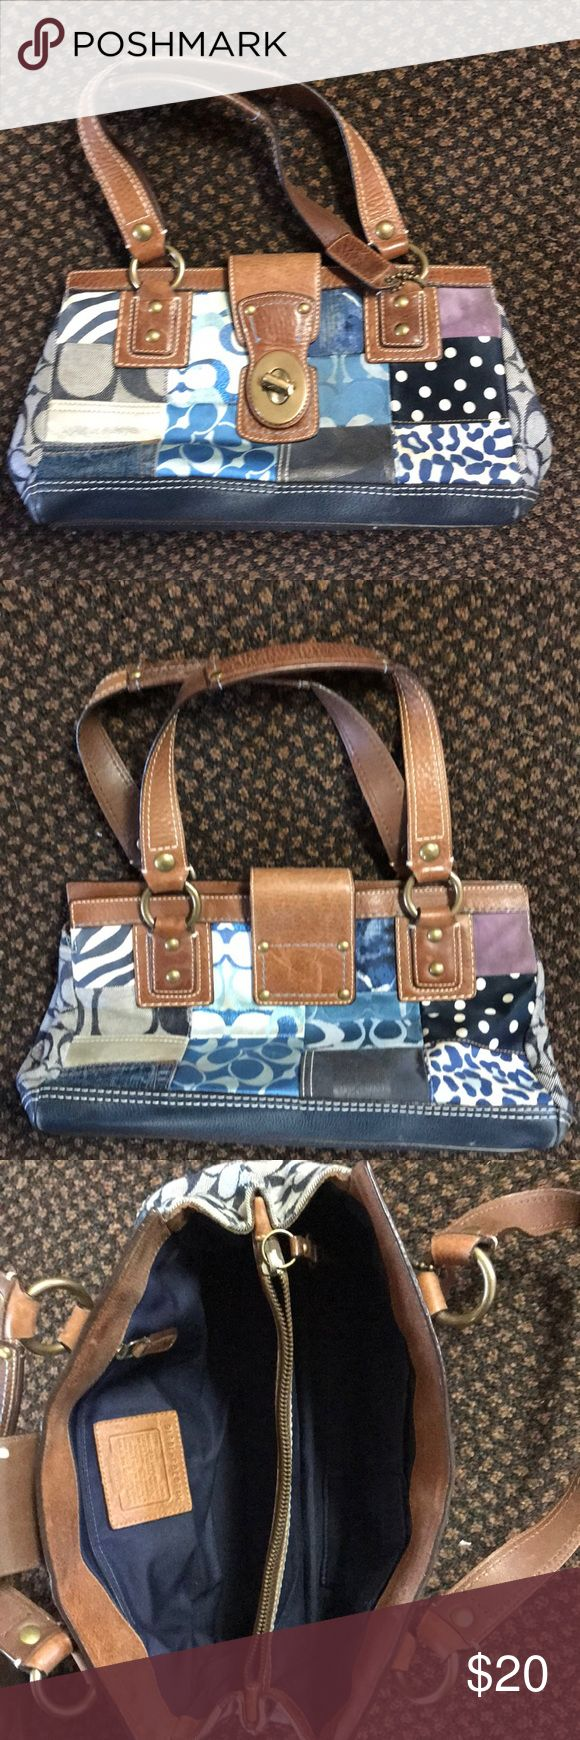 Coach Hobo Bag Very cute denim coach purse. Does show some wear but overall in good condition. Nice size. Not to small or big. Has a lot of pockets. Us buyers only. No trades. Coach Bags Totes